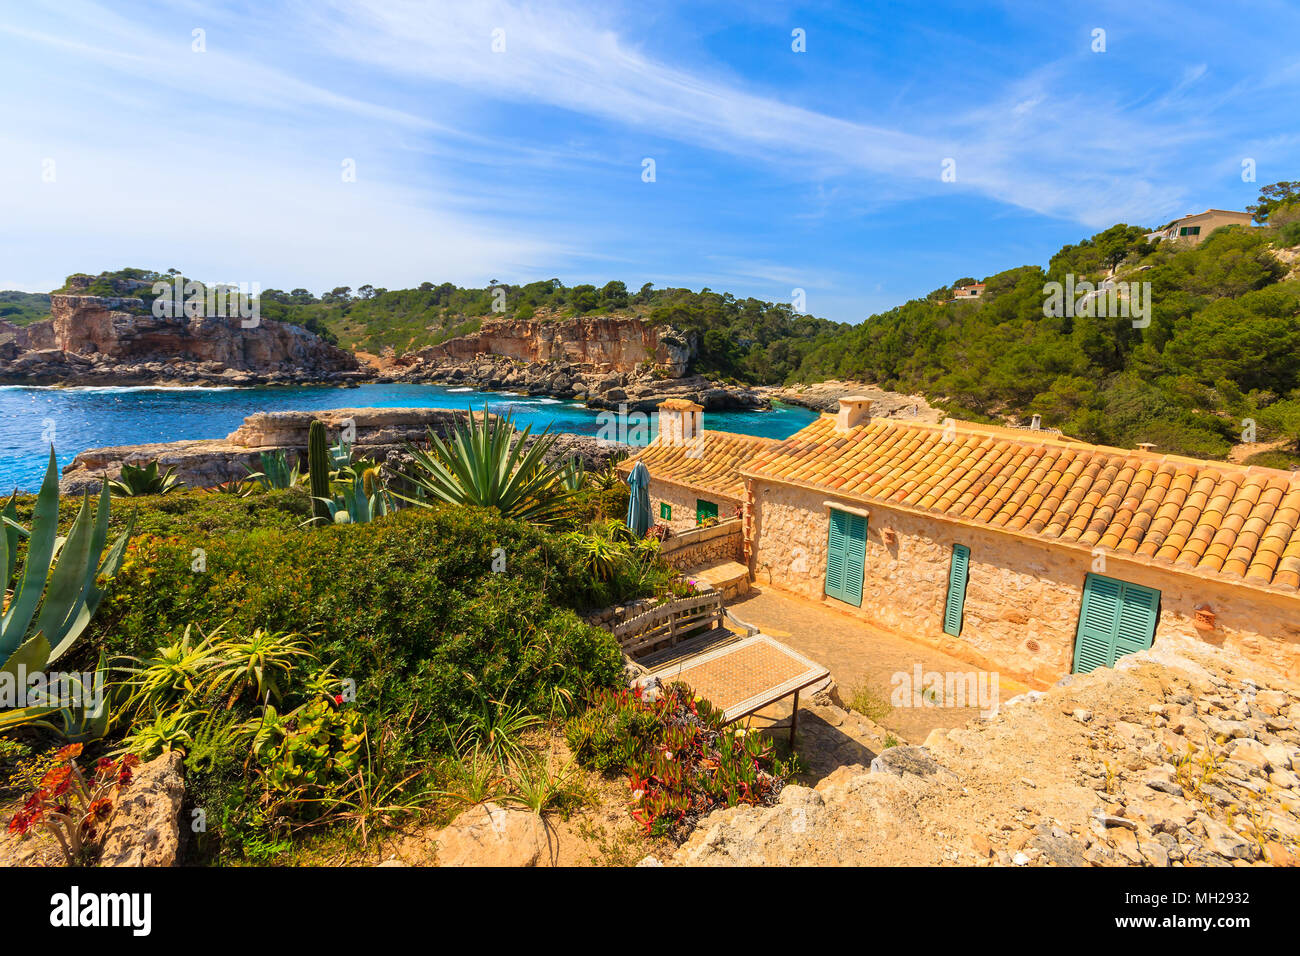 Typical stone house in beautiful bay with beach, Cala S'Almunia, Majorca island, Spain - Stock Image